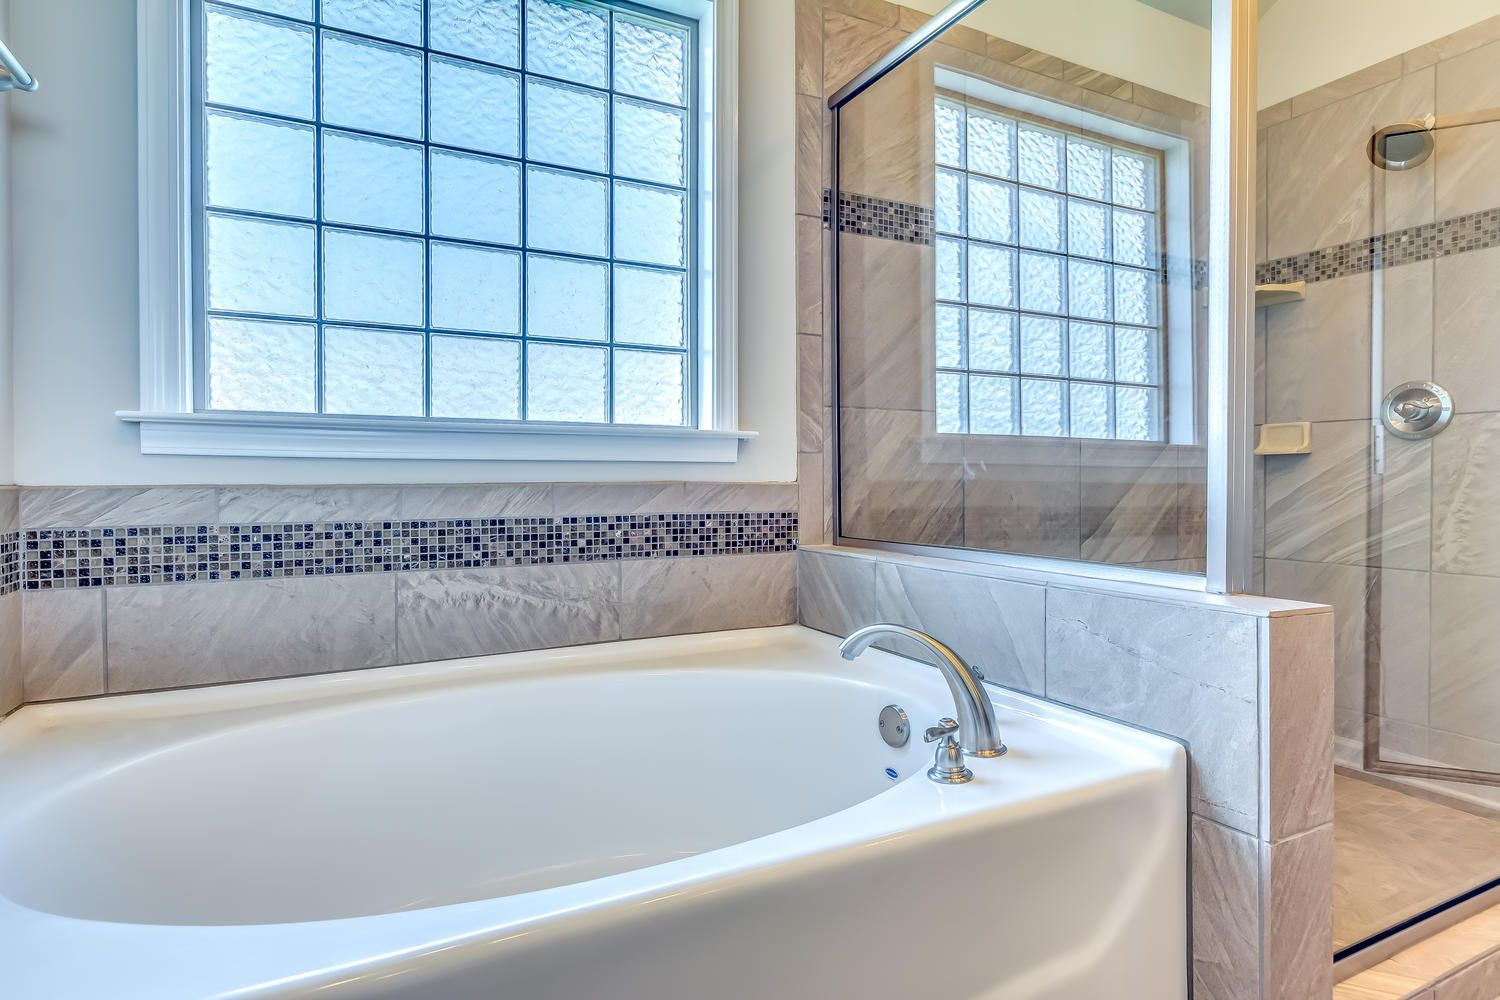 Stunning master bathroom with tan walls along with a large bath tub ...